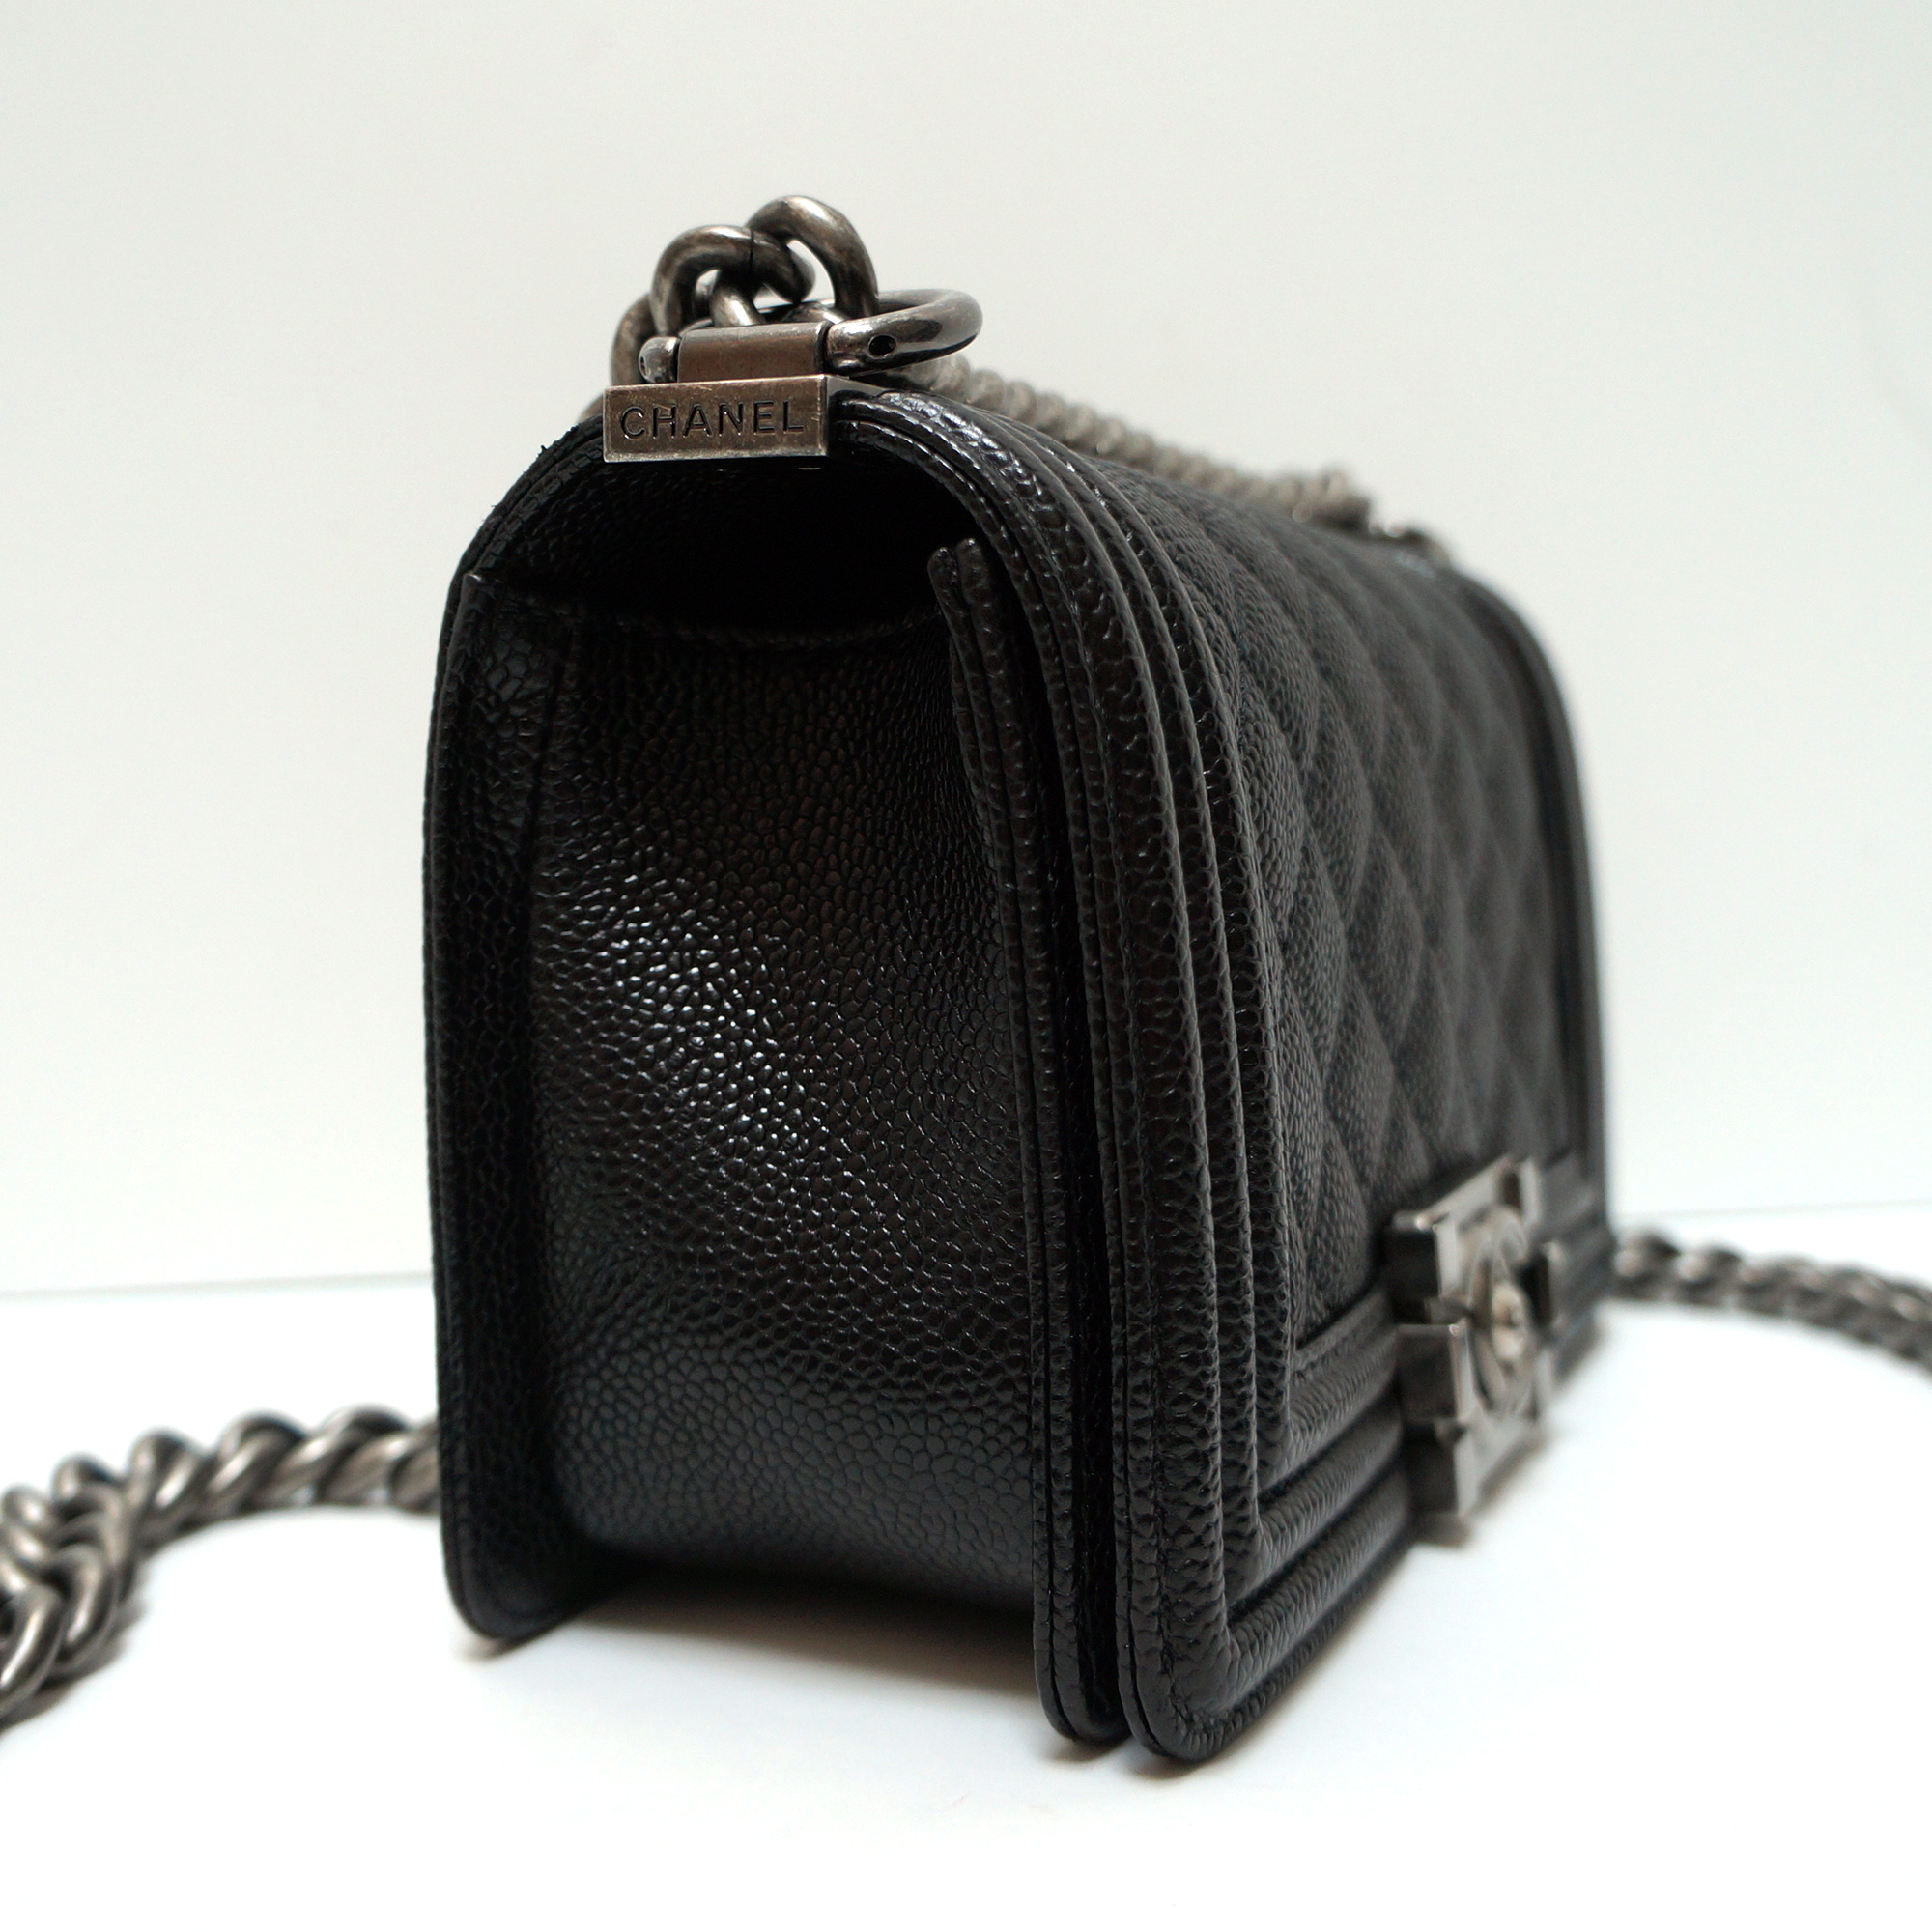 9cffb057c3523d Chanel Small Flap Bag Caviar Leather | Stanford Center for ...